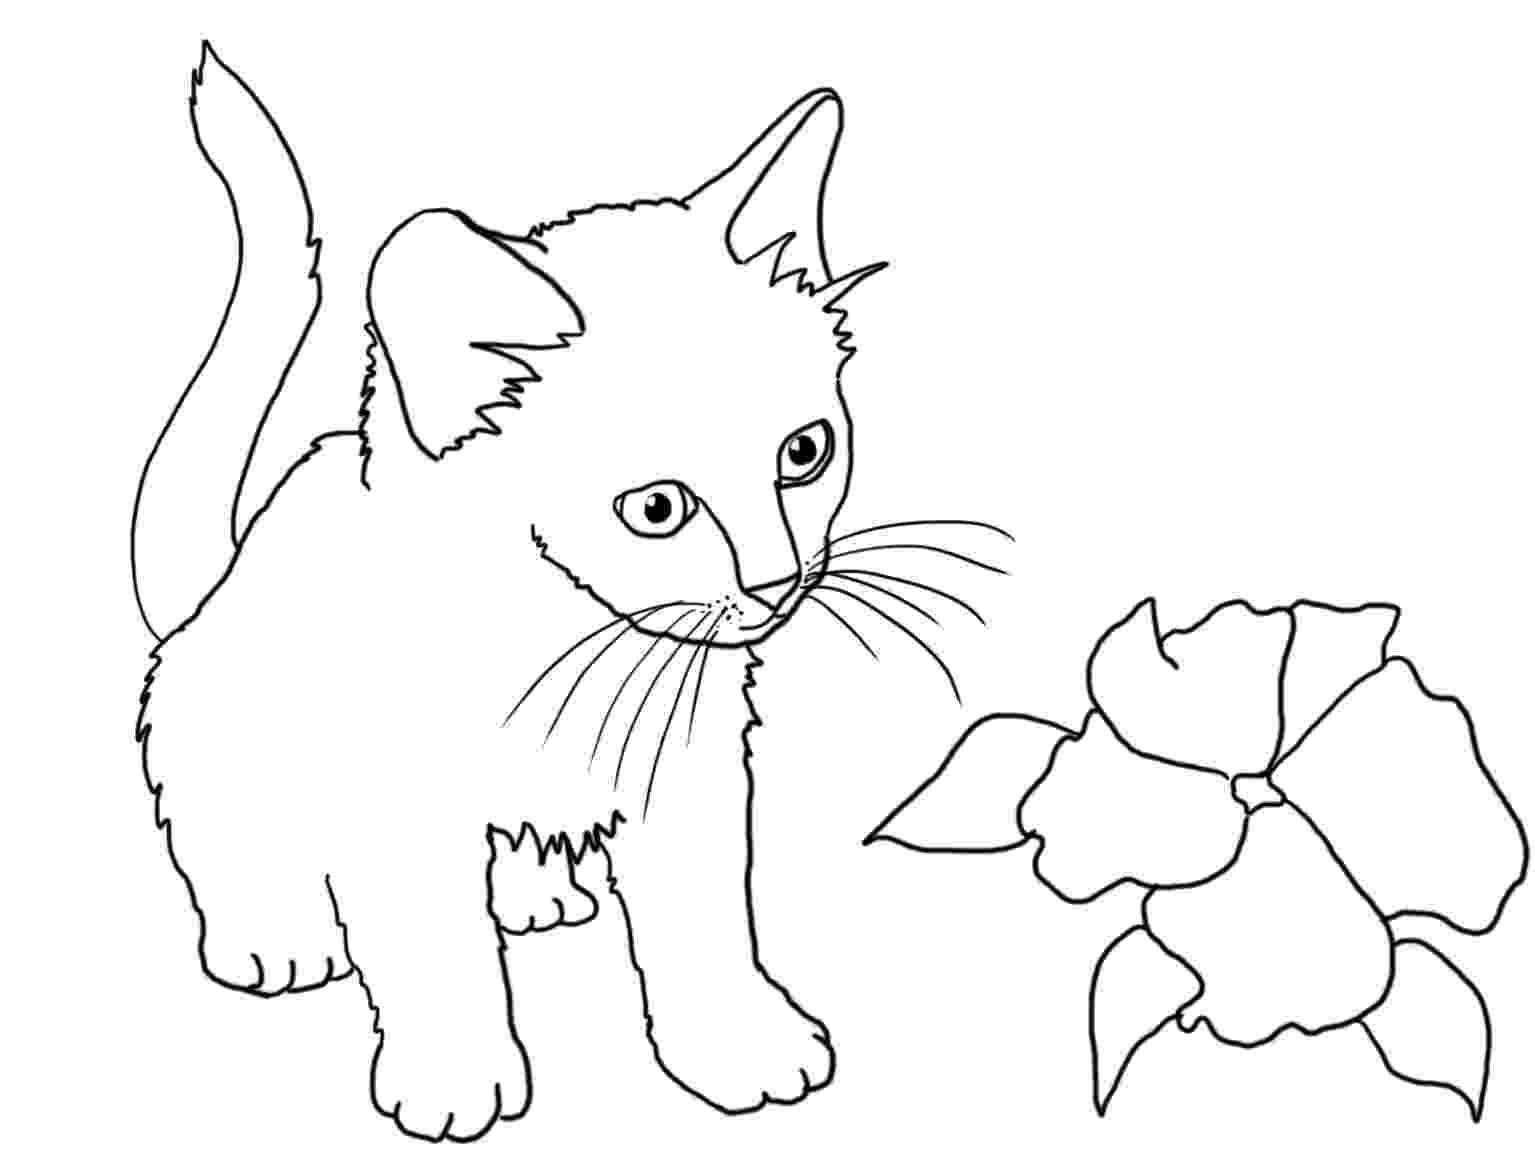 kitten color pages kitten coloring pages best coloring pages for kids kitten color pages